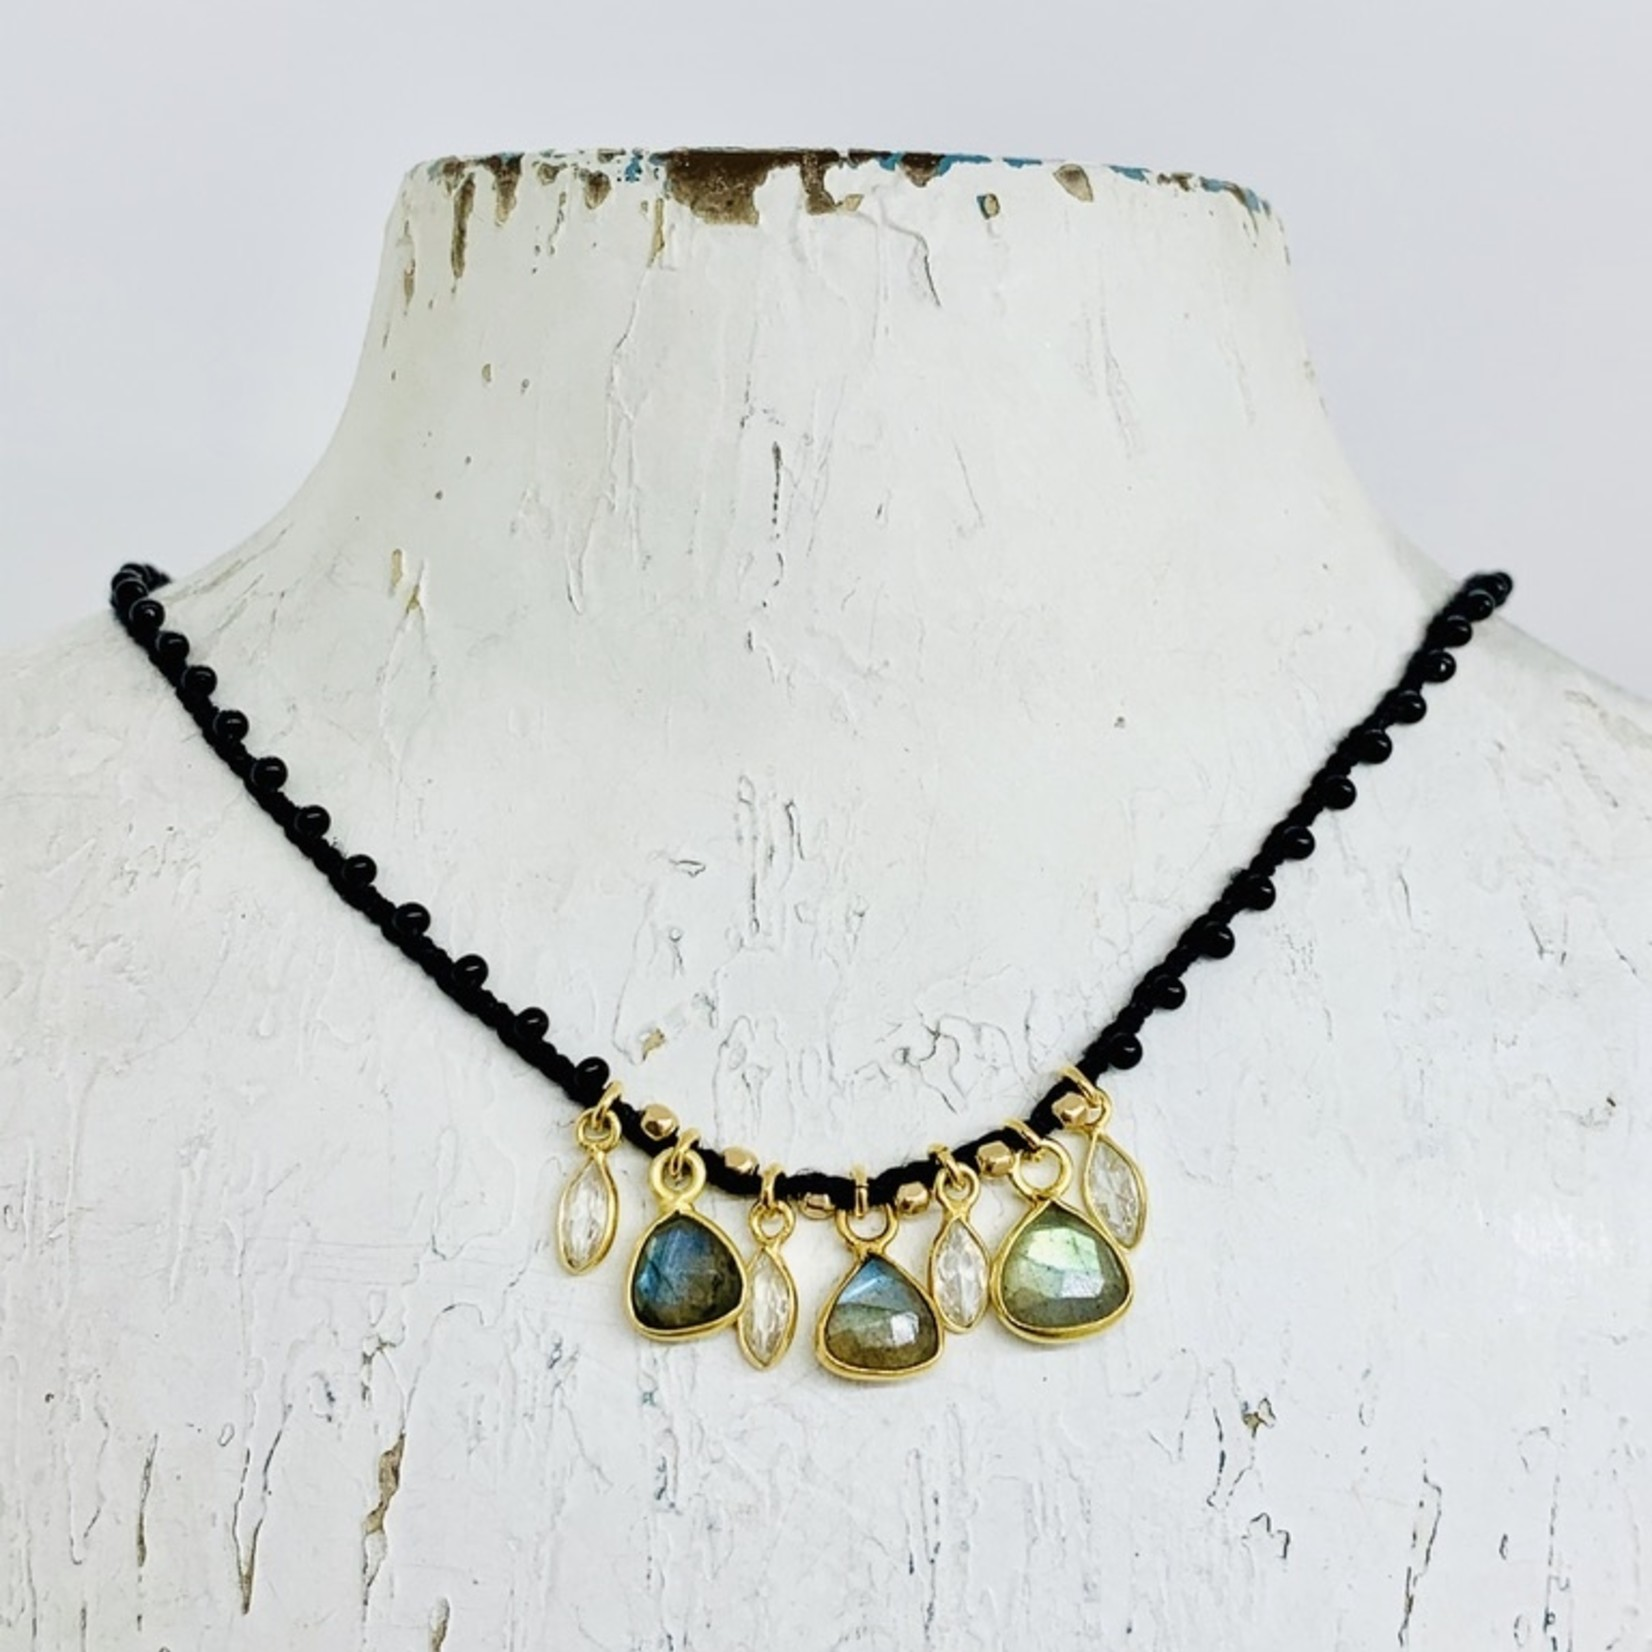 """Native Gems GLOSS silk crochet necklace, 16-18"""" with Labradorite and CZ charms and 14k GF closure"""